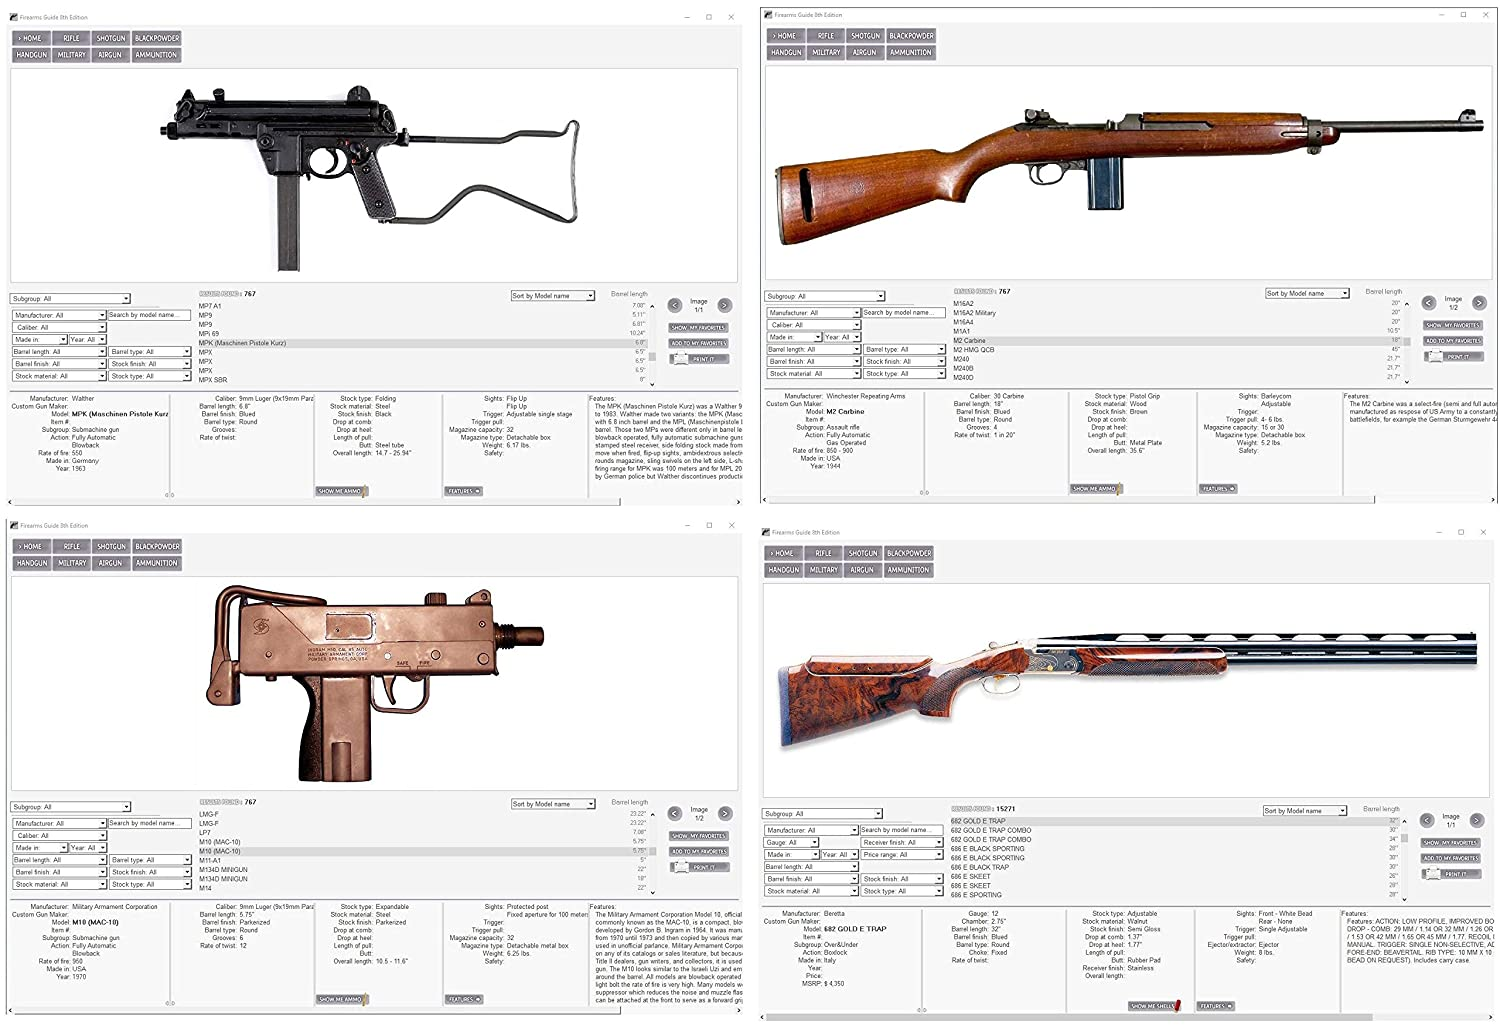 Firearms Guide 9th Edition Worlds Largest Gun 1911assemblydiagram Printable Schematics Exploded Reference Value Library Sports Outdoors